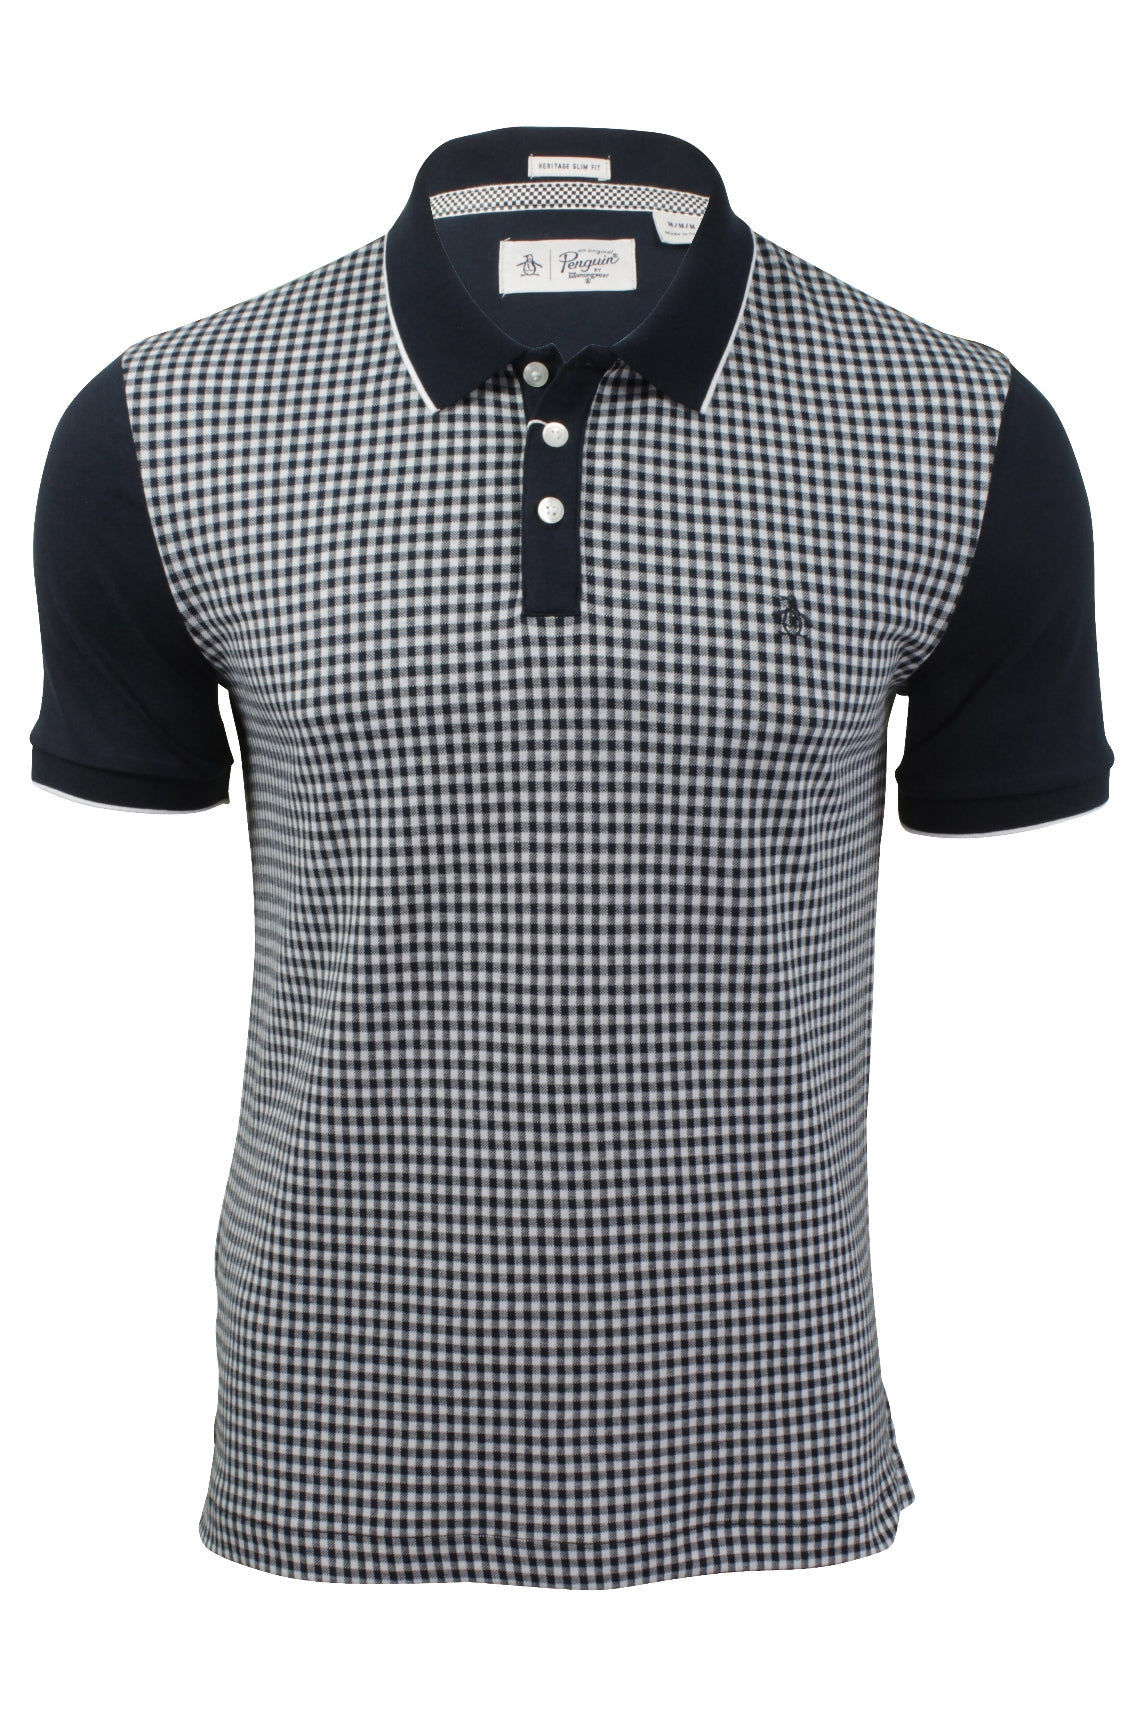 Mens Jacquard Gingham Check Polo T-Shirt by Original Penguin-Main Image